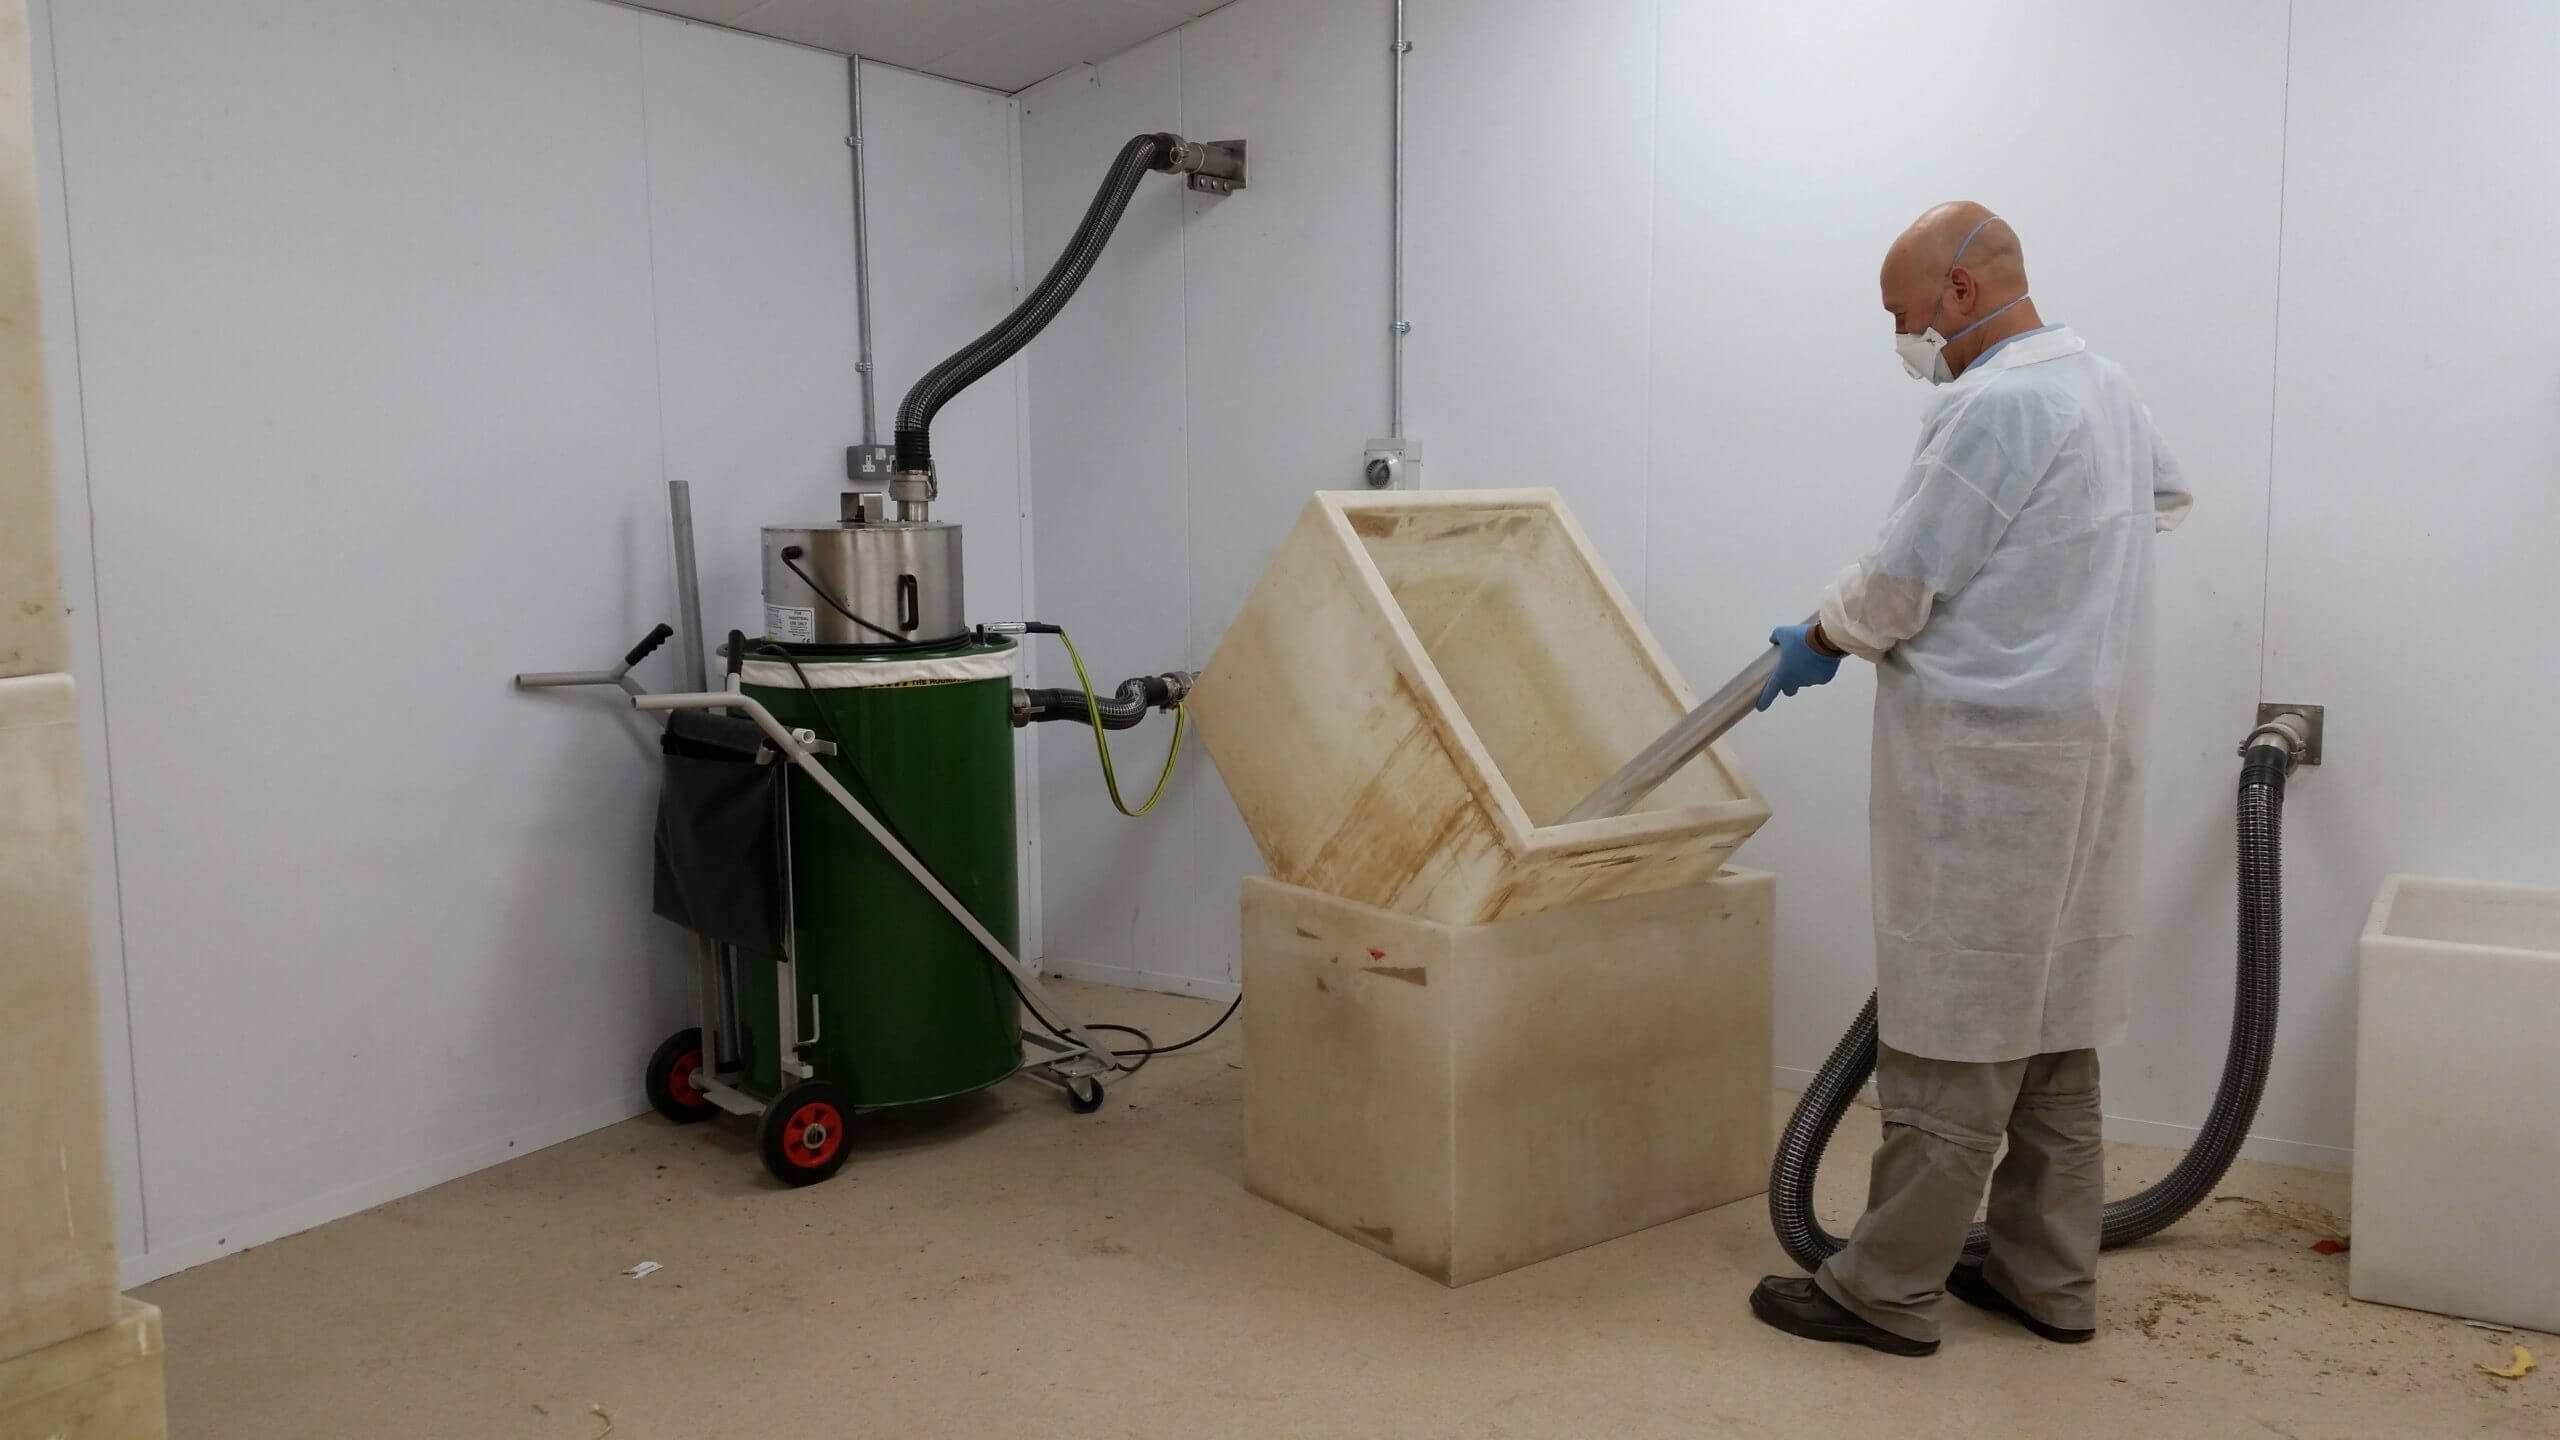 Peregrine Livefoods Cleaning Out Insect Bins With The Big Brute Industrial Vacuum Cleaner